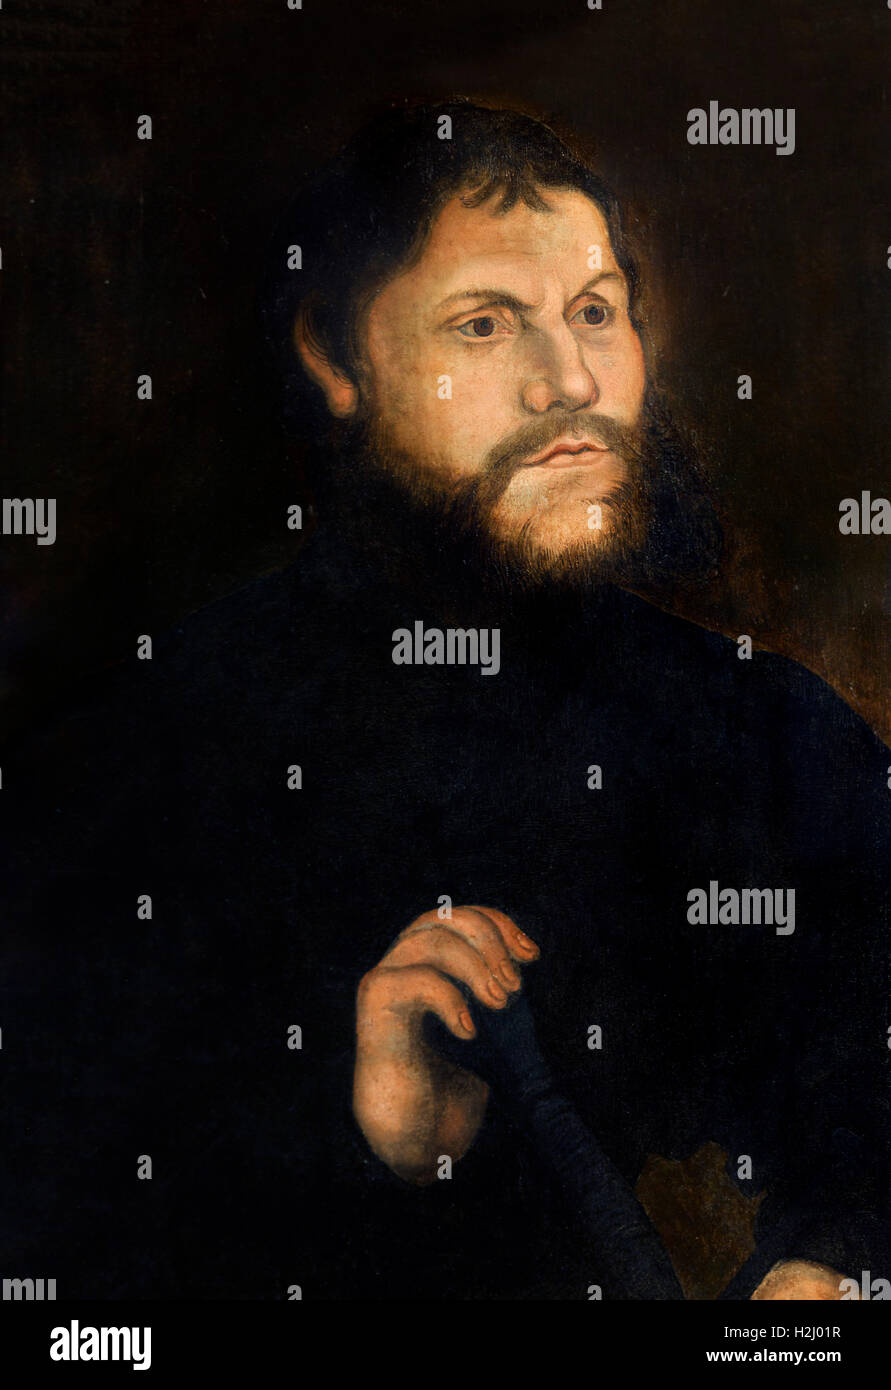 an analysis of martin luther who lived from 1483 1546 Martin luther and his impact in religious reform movement in germany 1483-1546 the movement led the pope to exclude martin luther till he died in 1546.